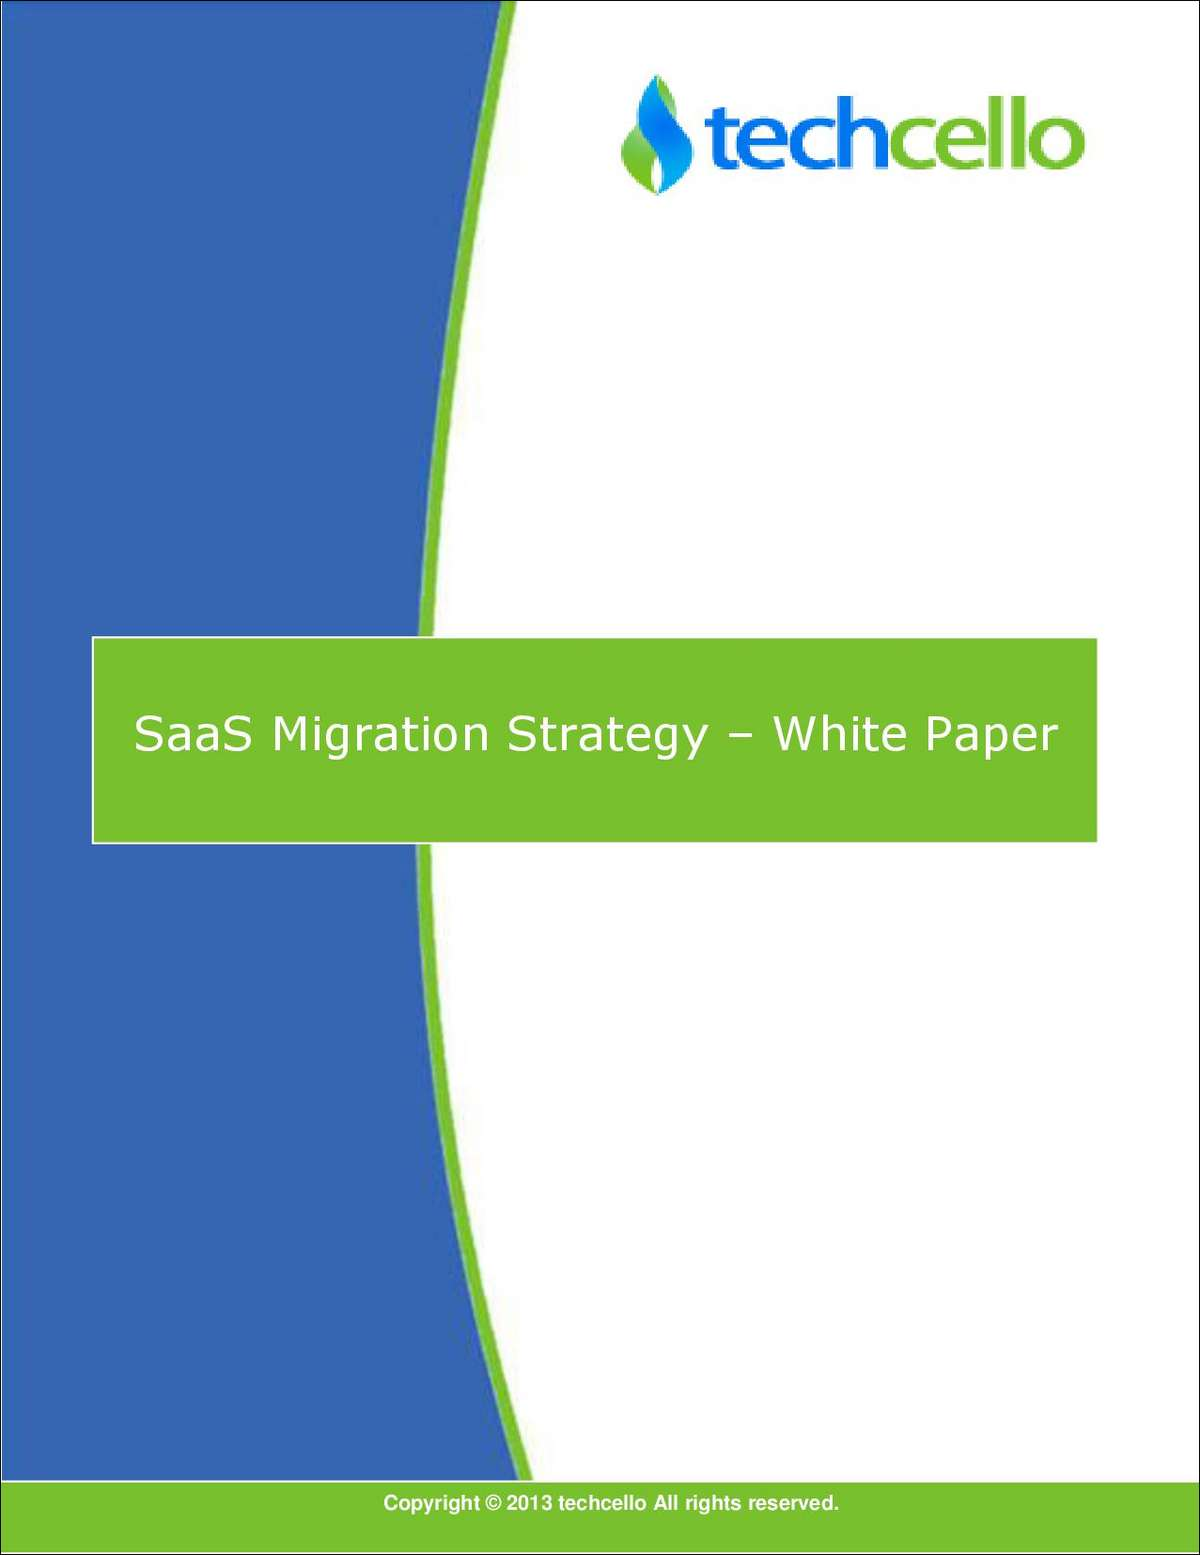 SaaS Migration Strategy